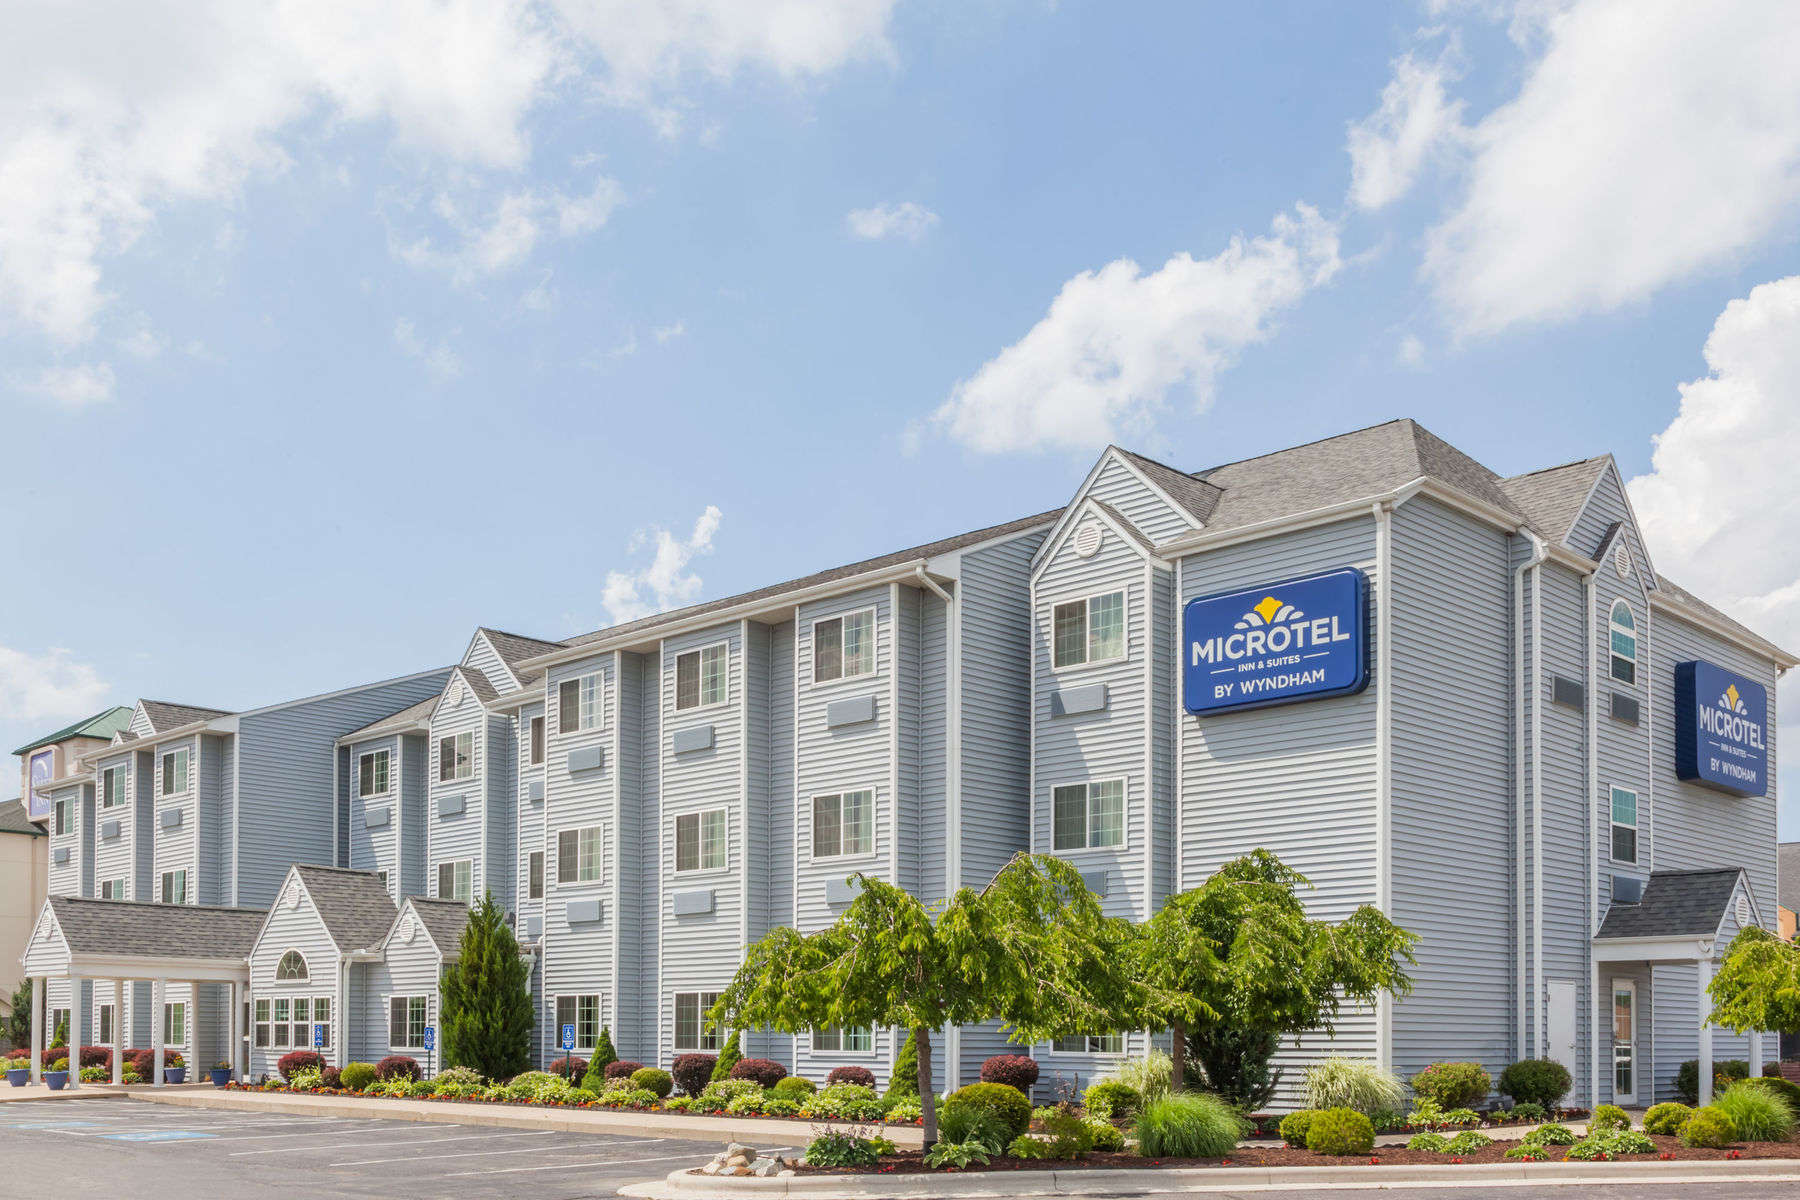 Purchase loan of Microtel of Elkhart, Indiana